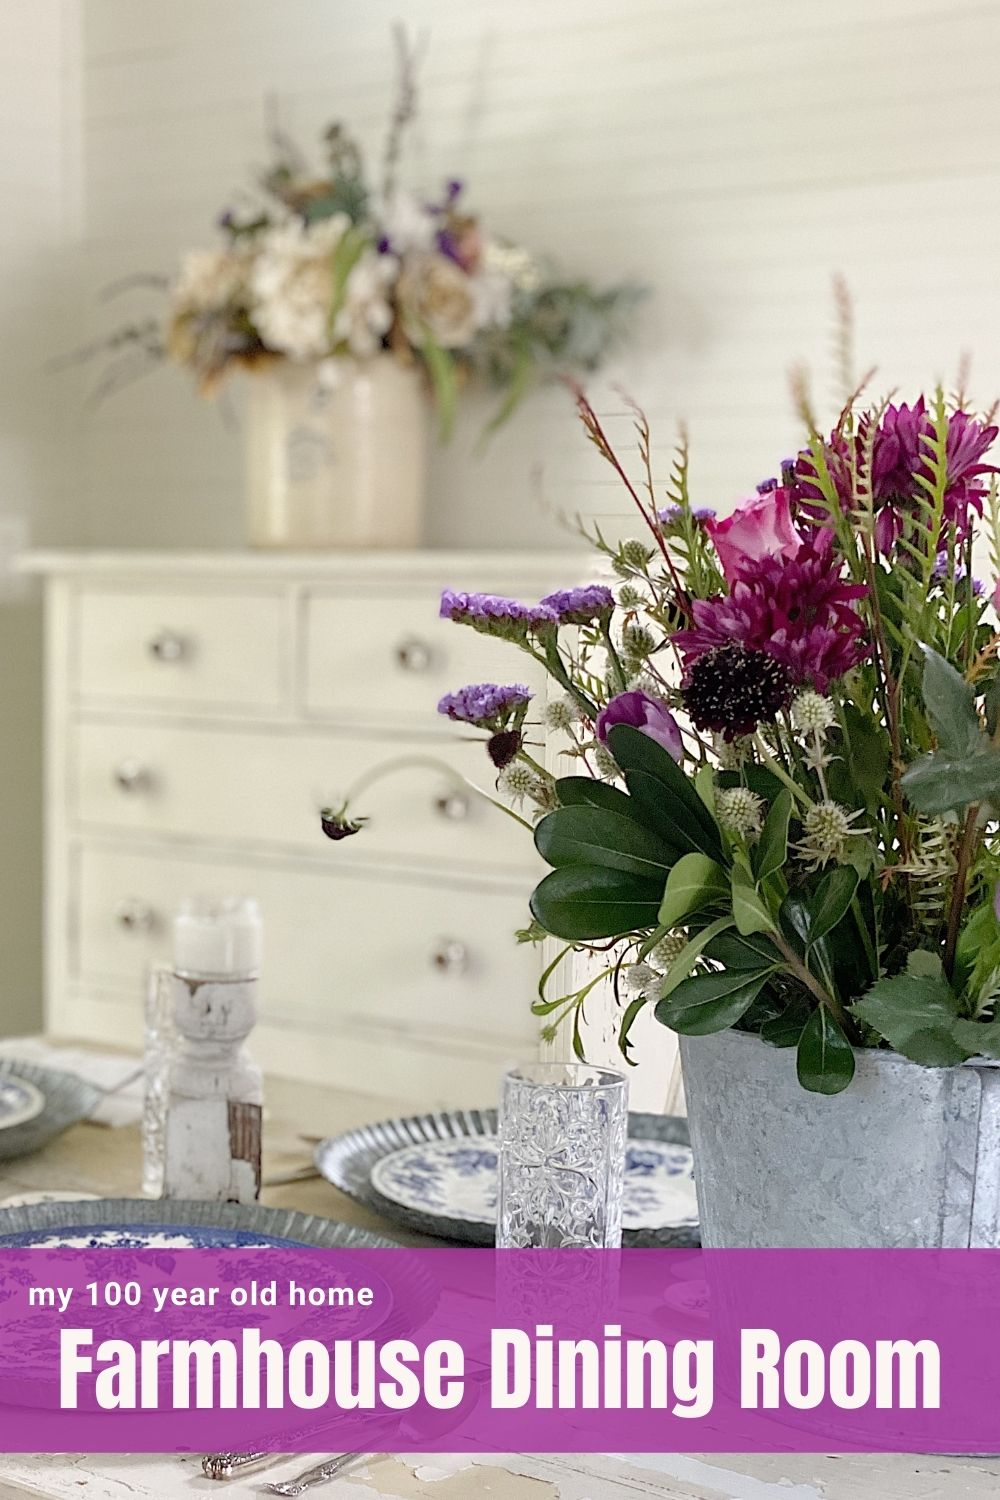 I am back to entertaining again and today I am setting up a fun party in our Carriage House. I love our farmhouse dining room and this new look!